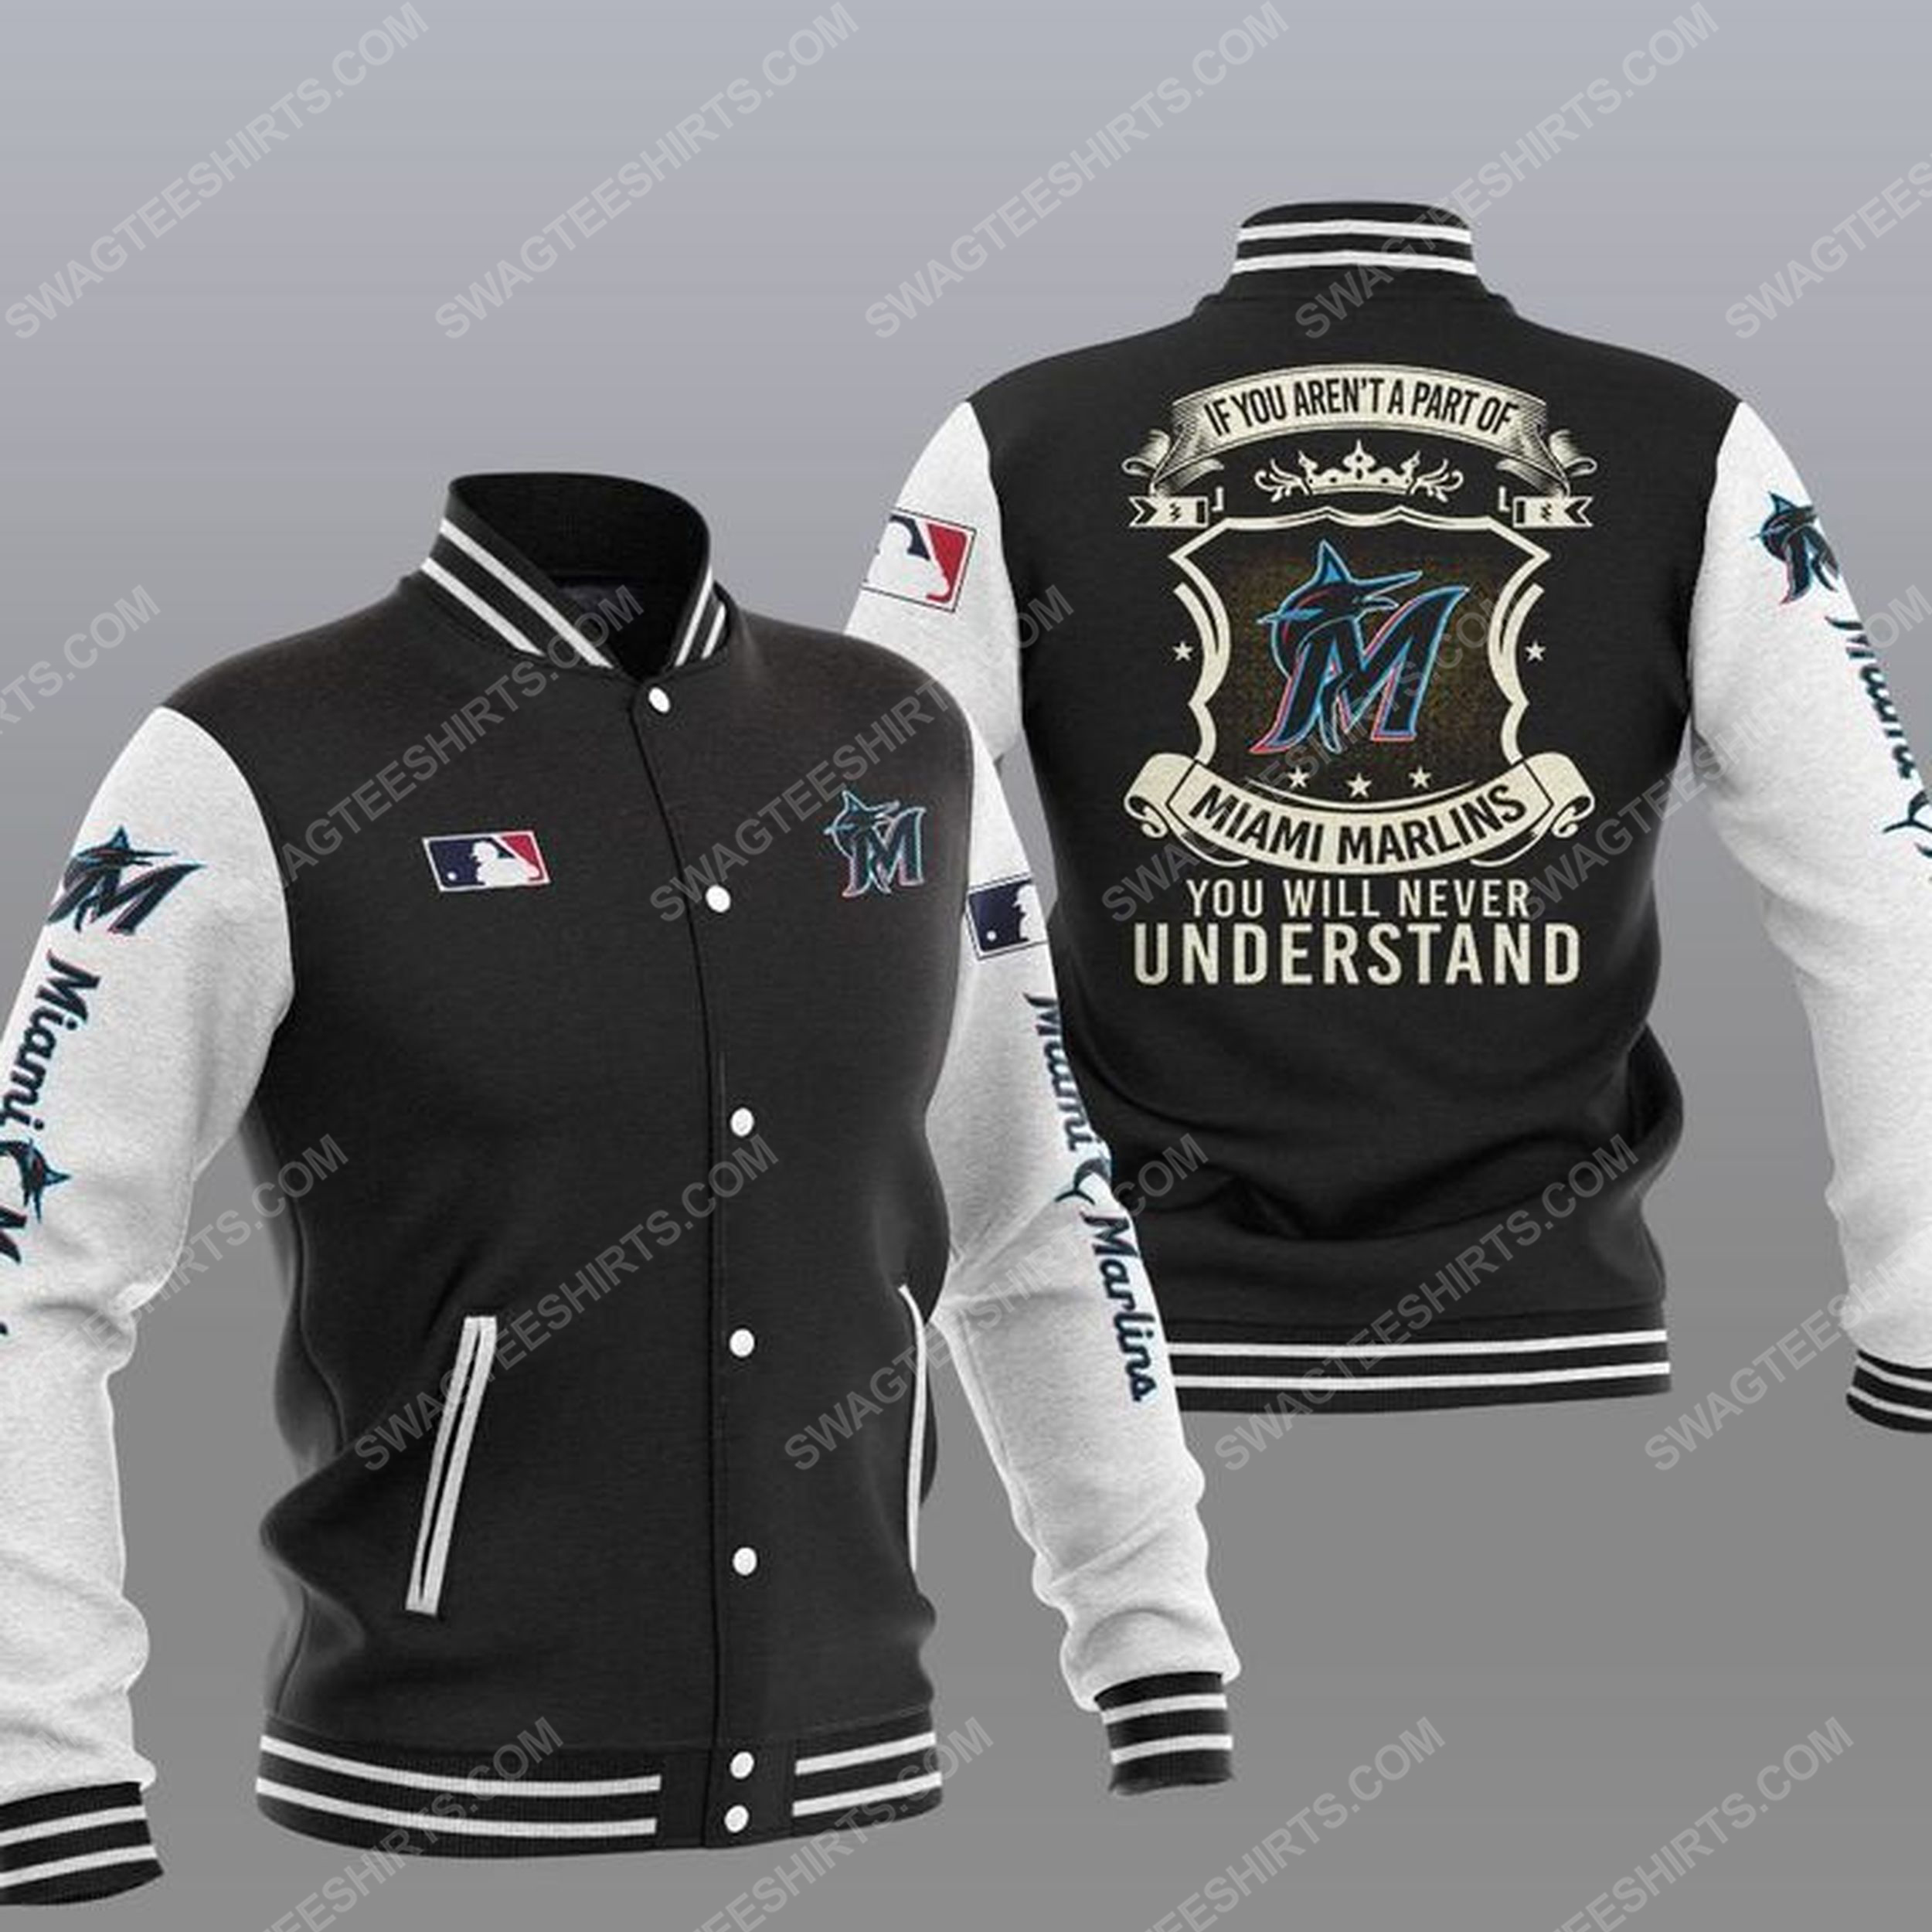 You will never understand miami marlins all over print baseball jacket - black 1